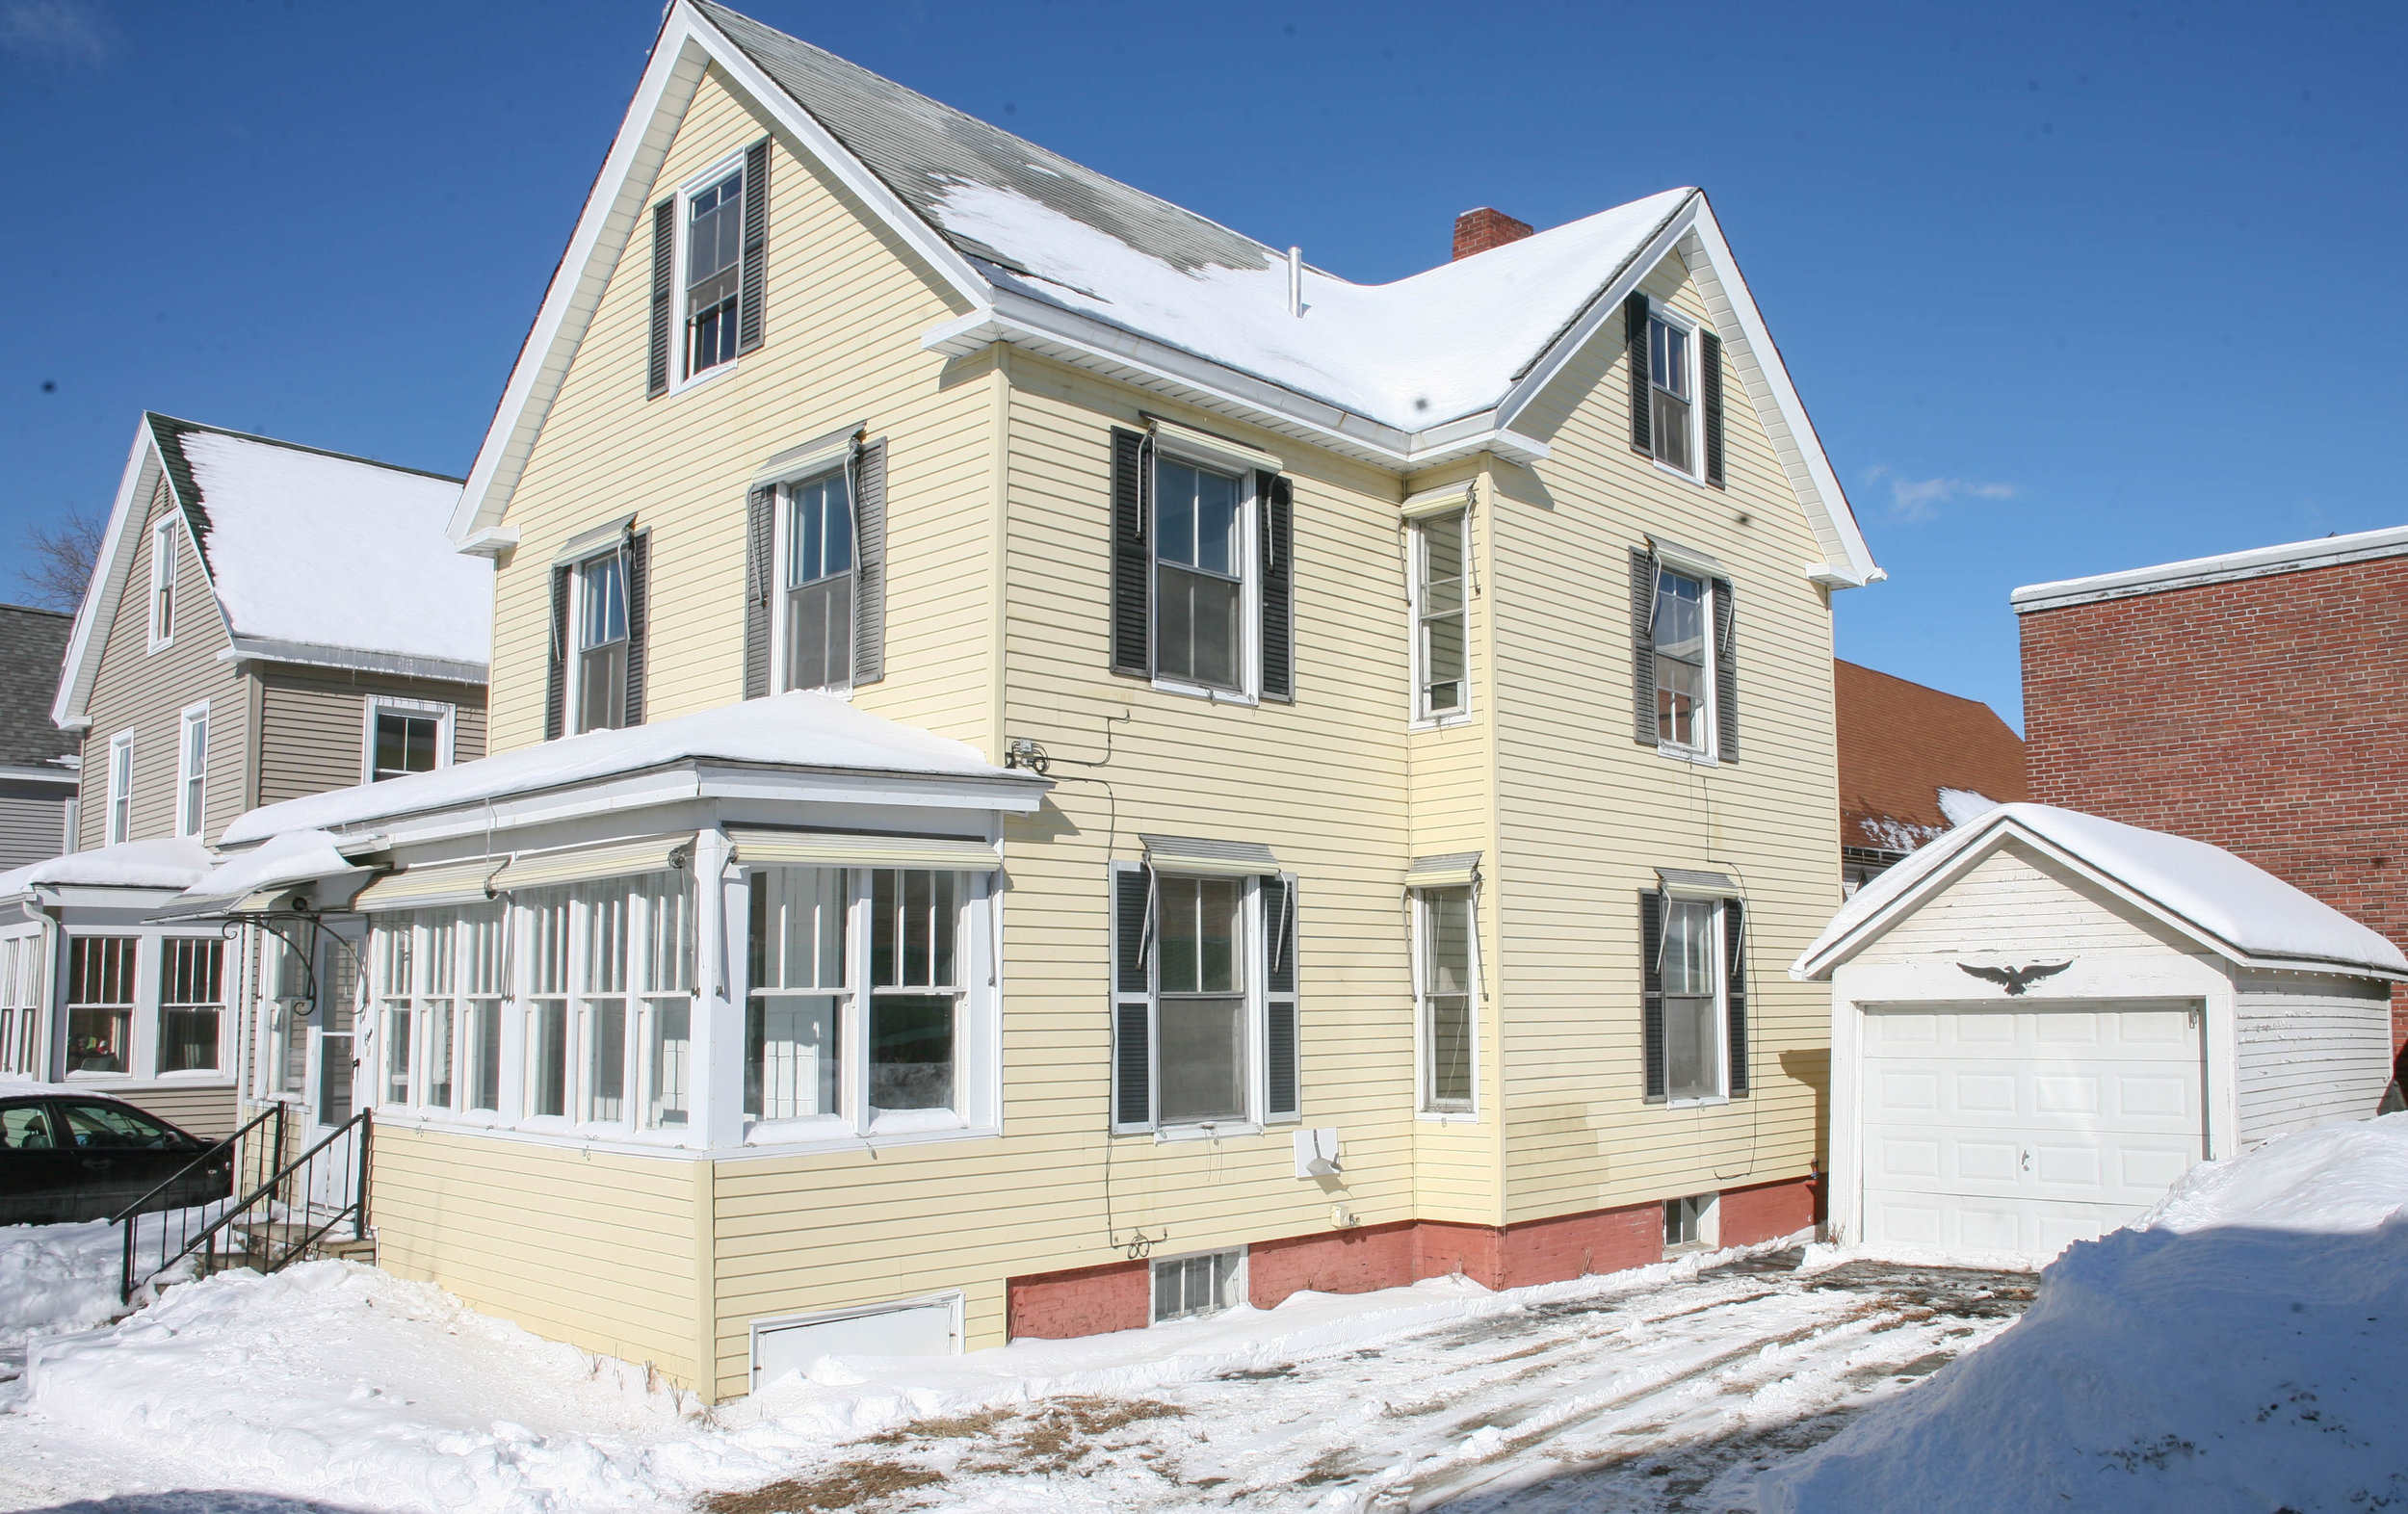 Welcome to 1 Elm Terrace in Waterville, ME.